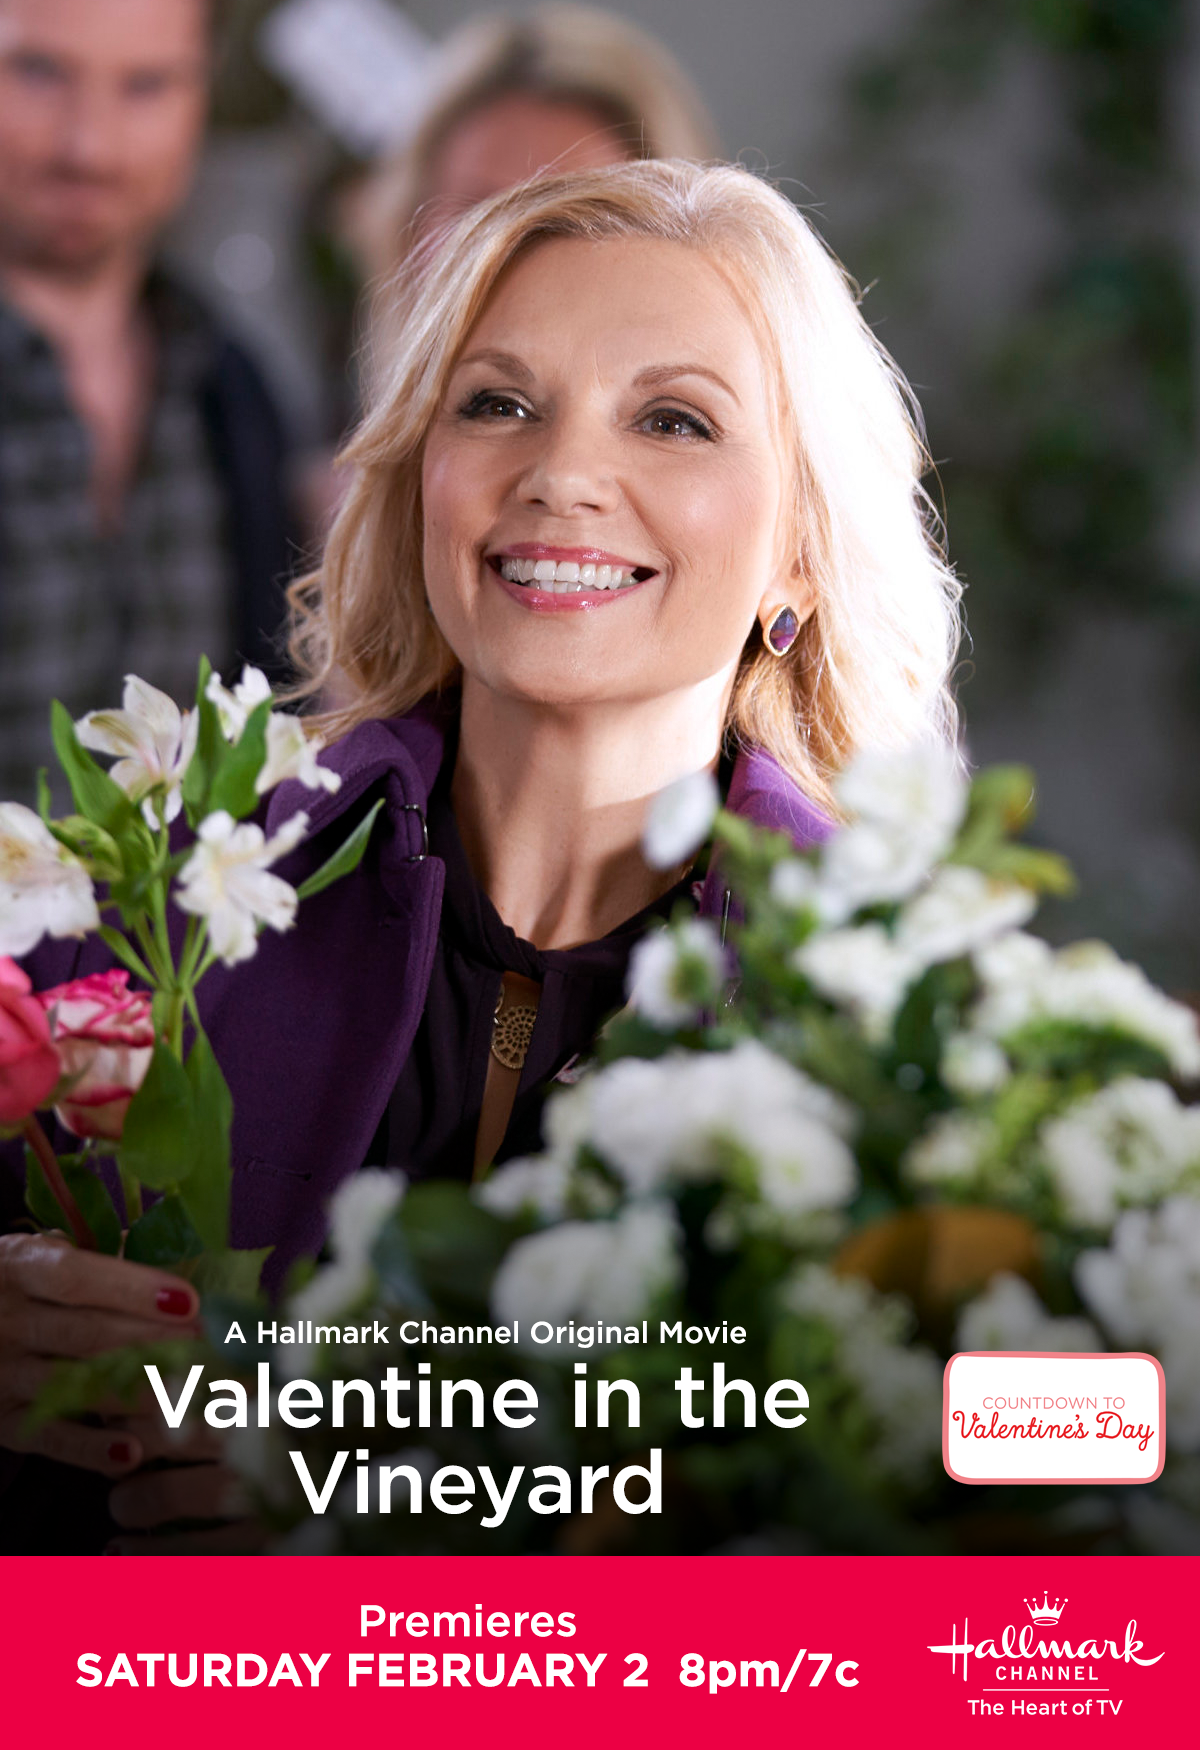 Teryl Rothery Looks Radiant As She Joins The Cast Of Valentine In The Vineyard Premiering February Hallmark Channel Teryl Rothery Hallmark Christmas Movies